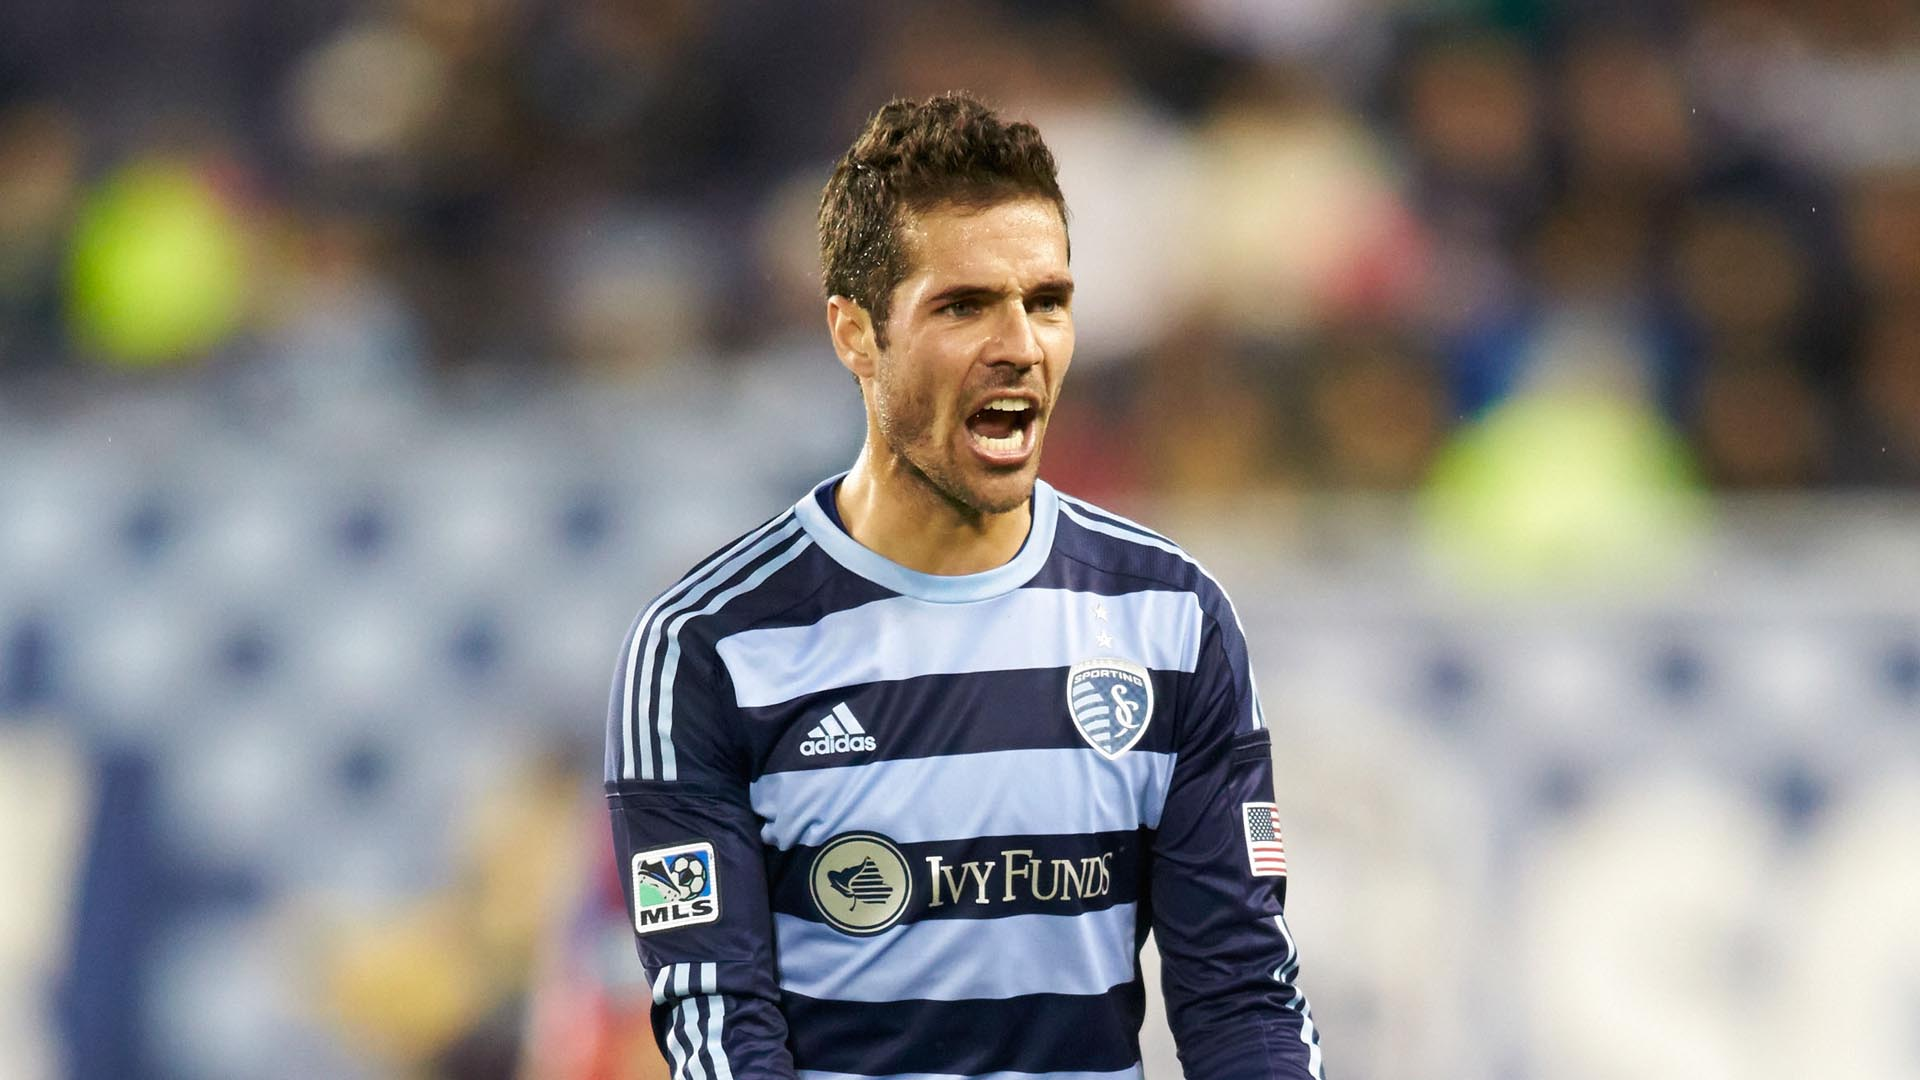 MLS, Gol de chilena, Benny Feilhaber, Kansas CIty, Chicago Fire, Graham Zusi, gol de la semana